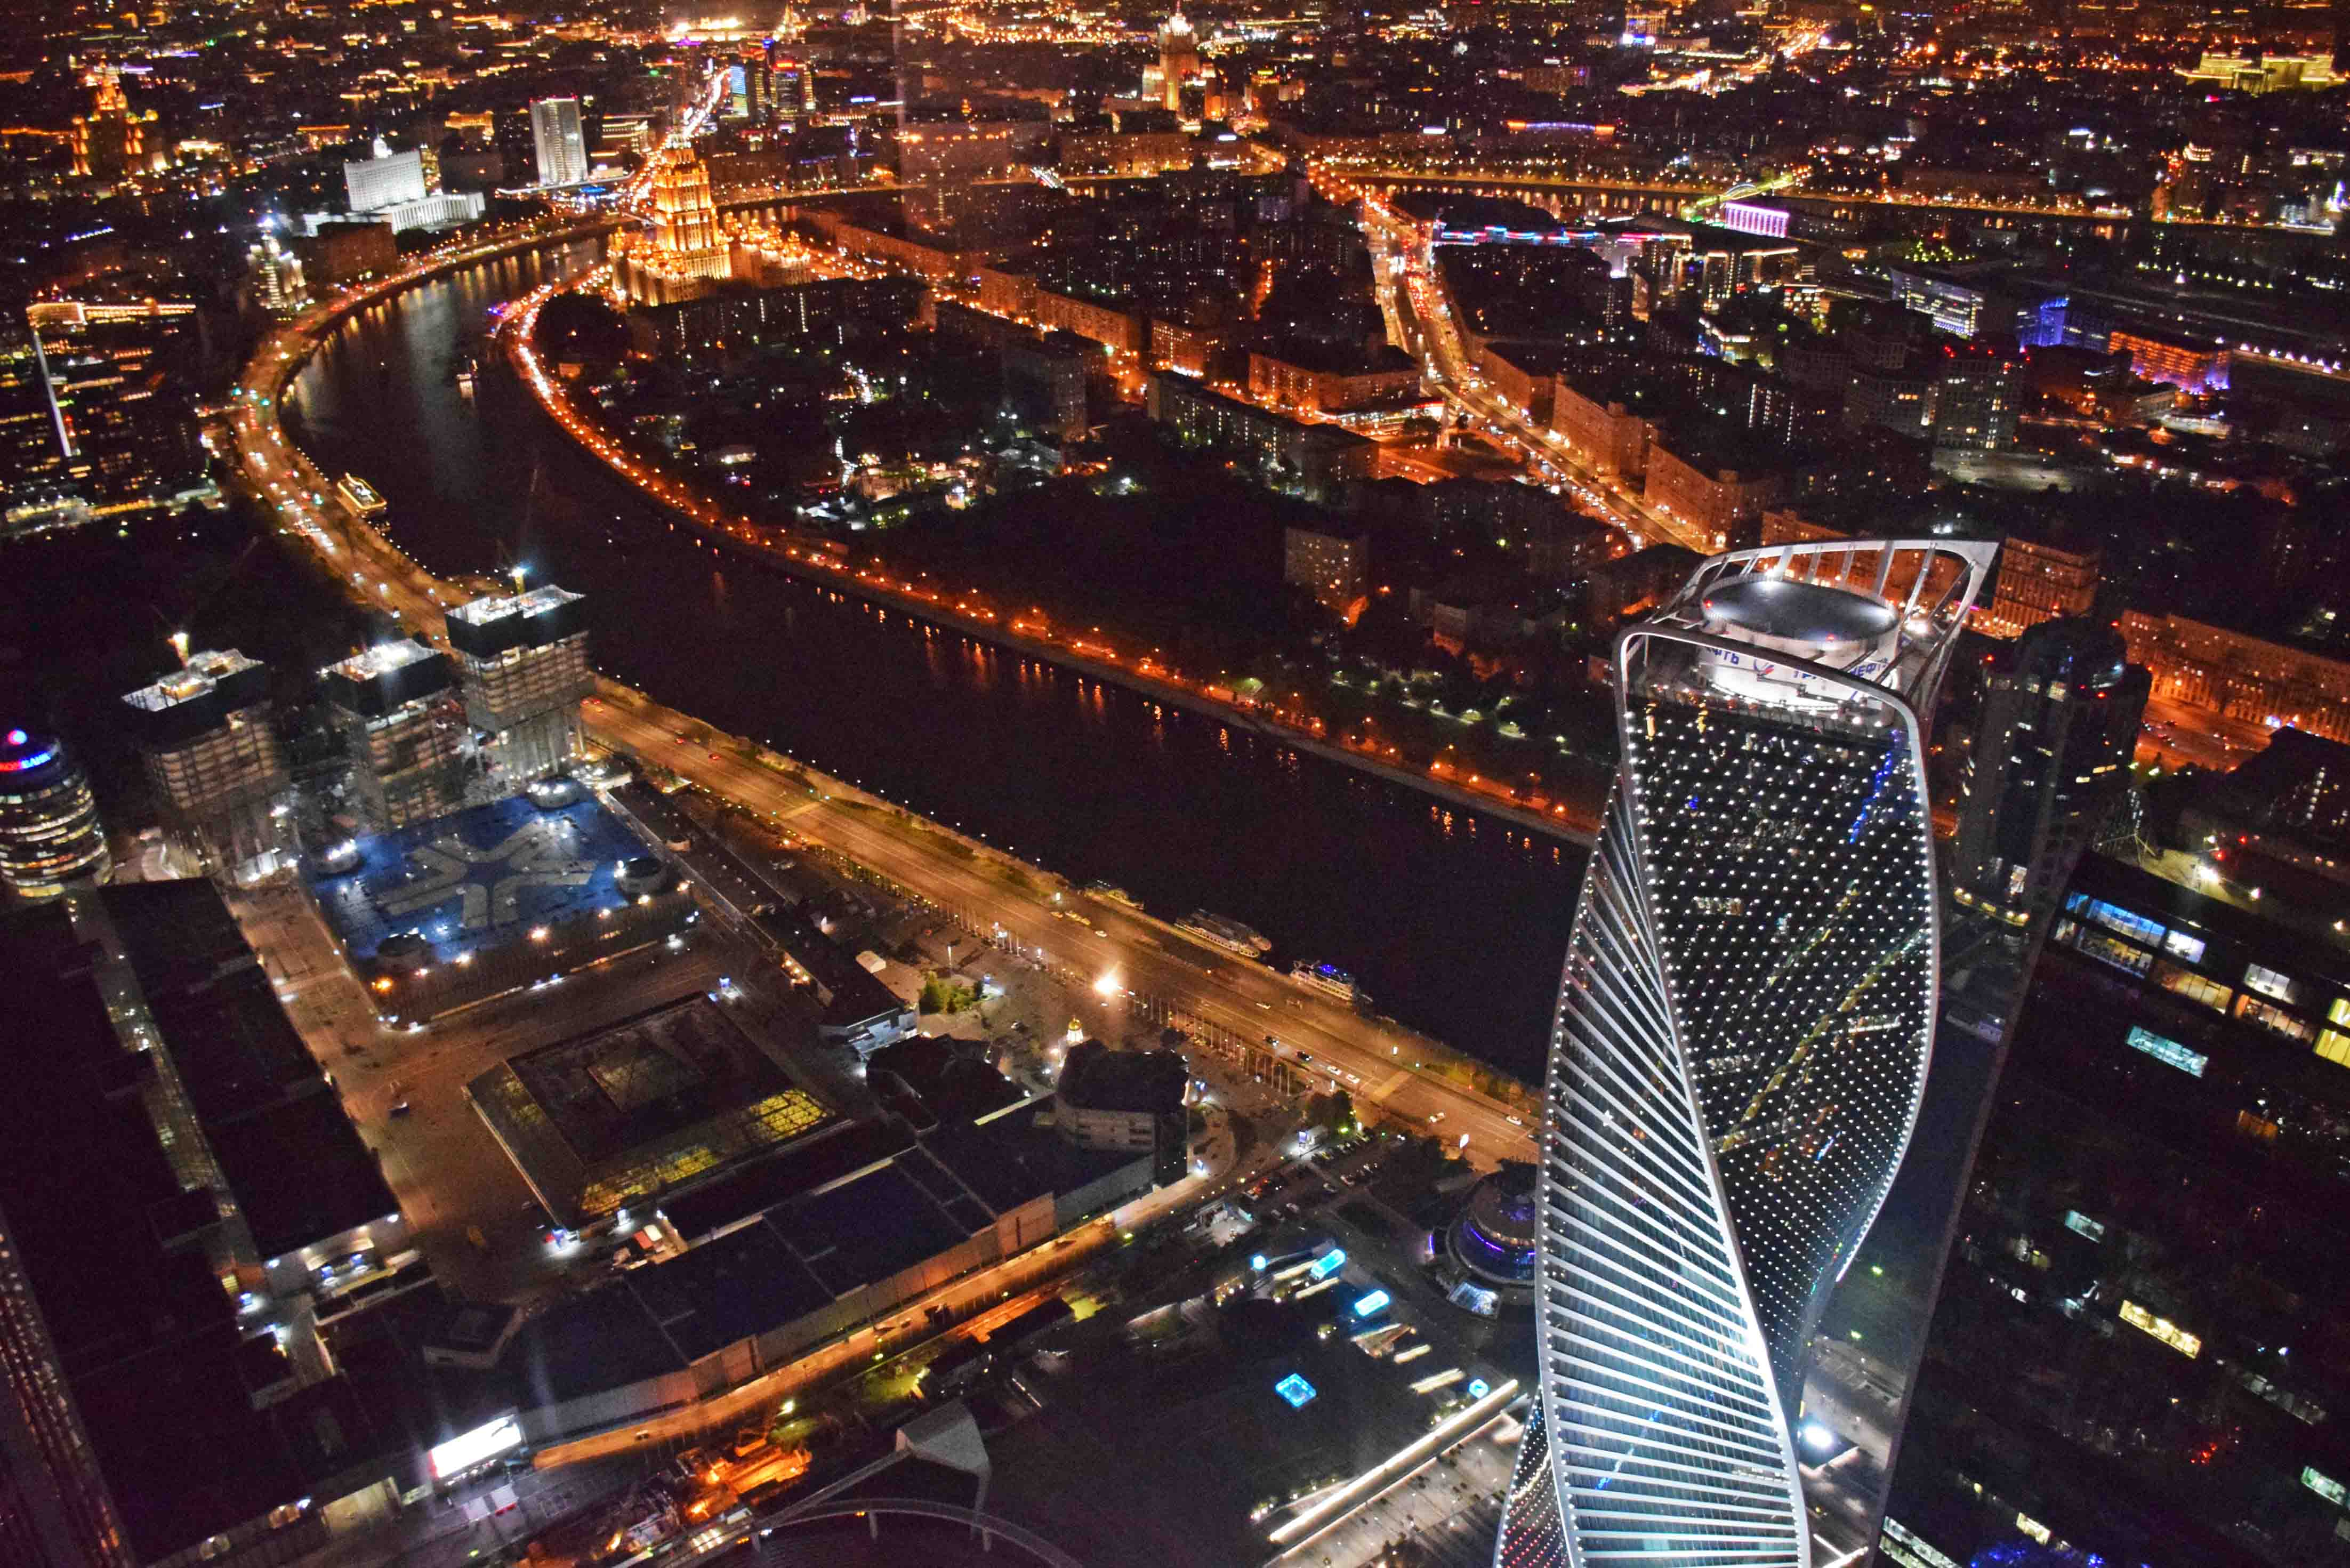 Panorama 360 - Moscow observation deck